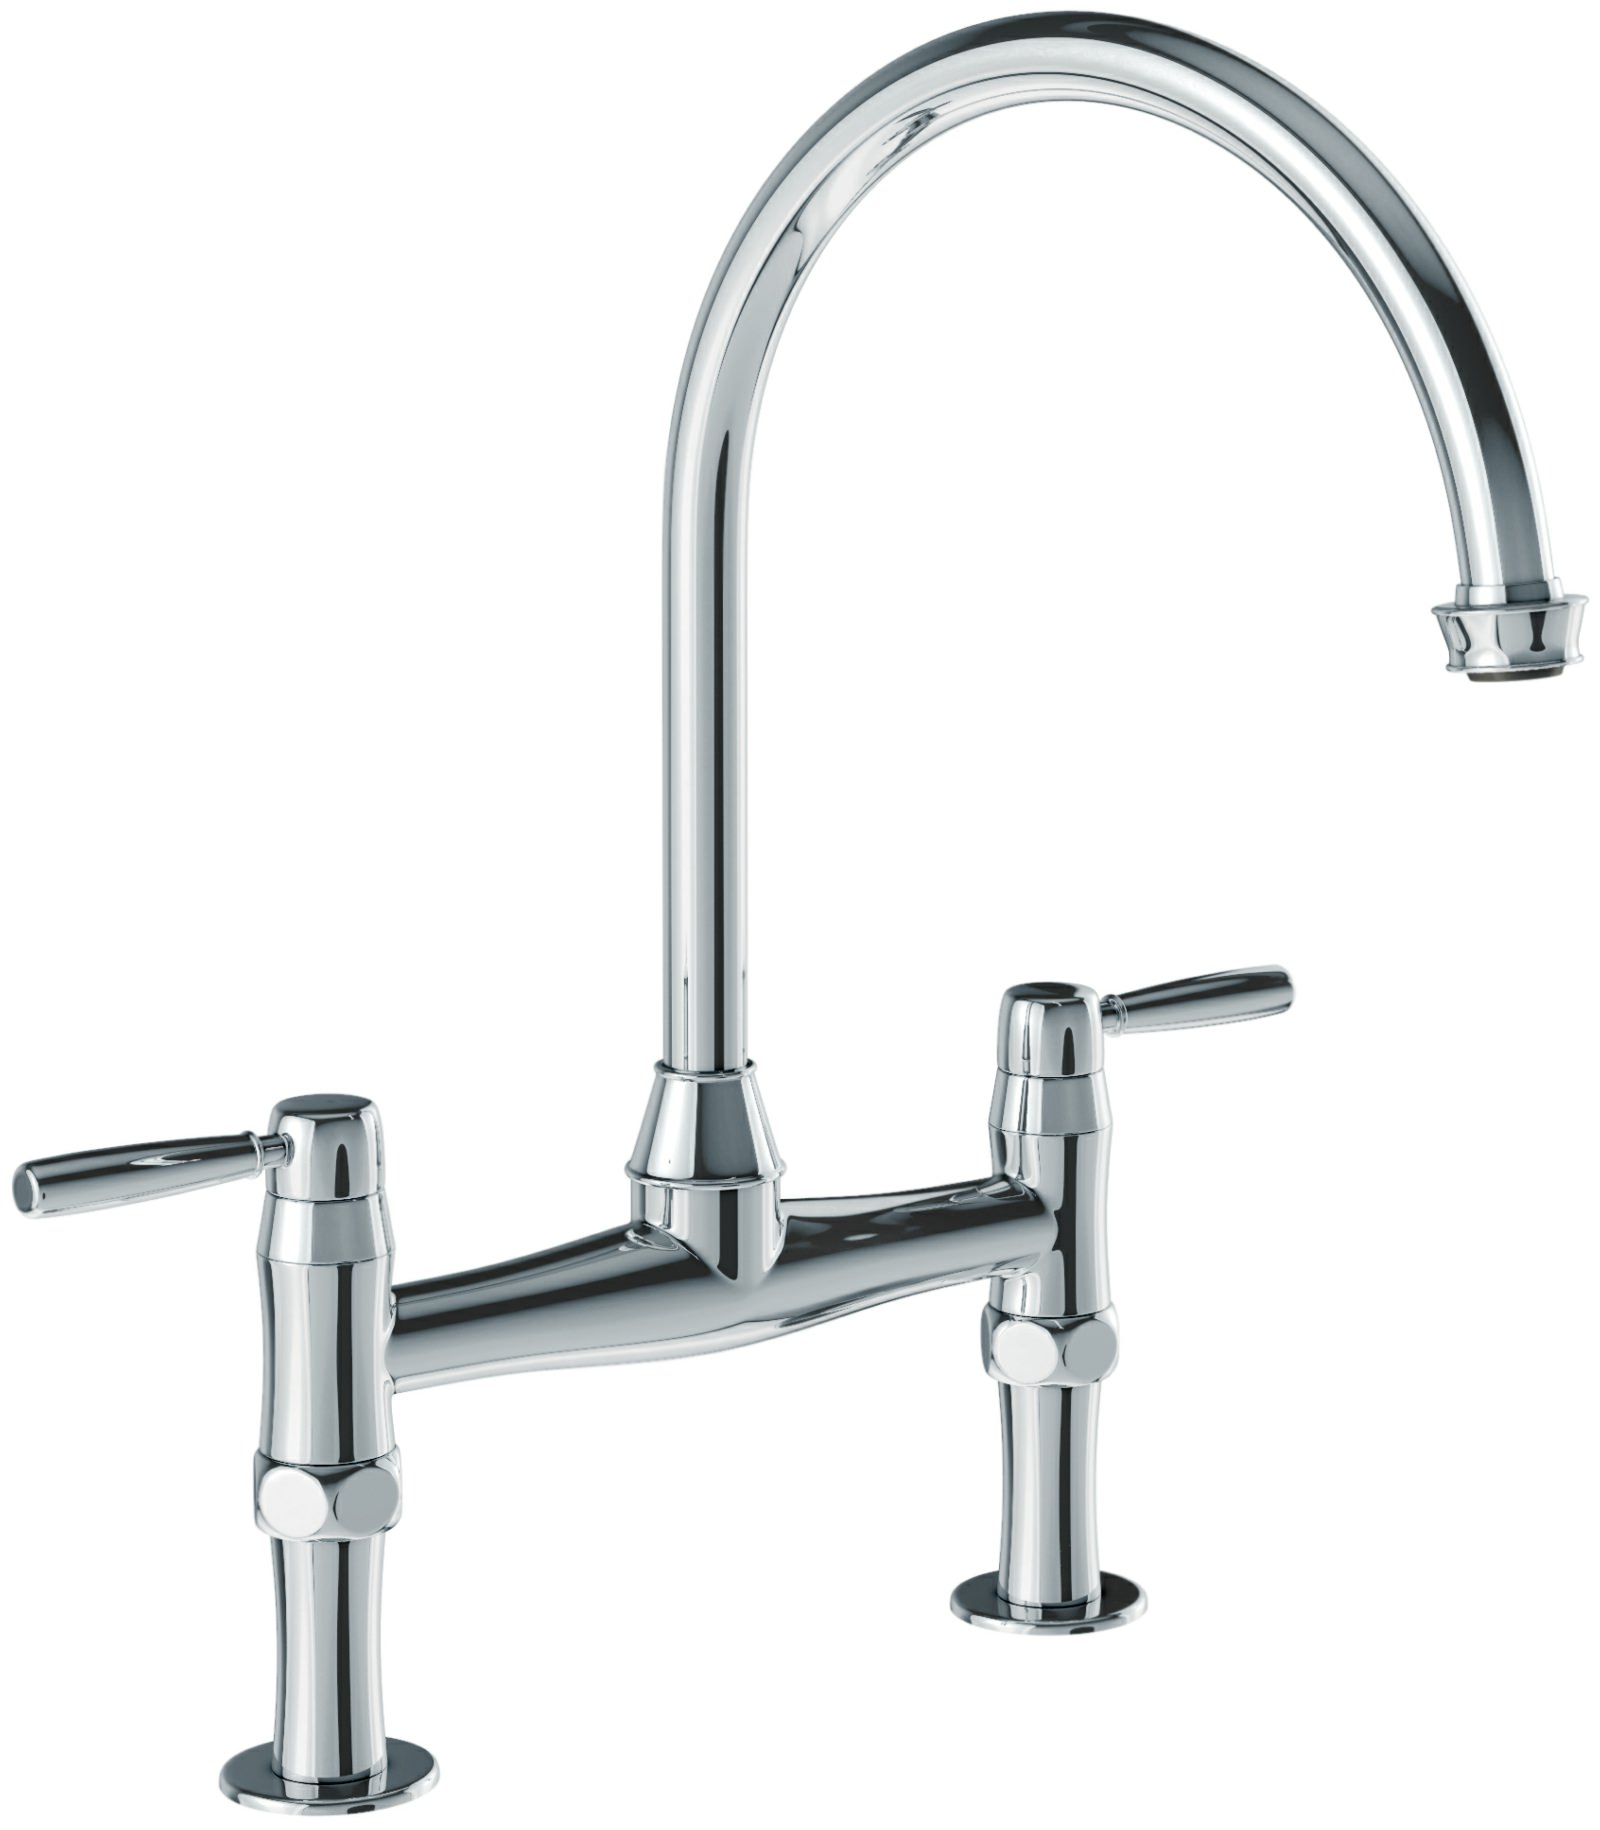 Abode Brompton Chrome Bridge Kitchen Mixer Tap